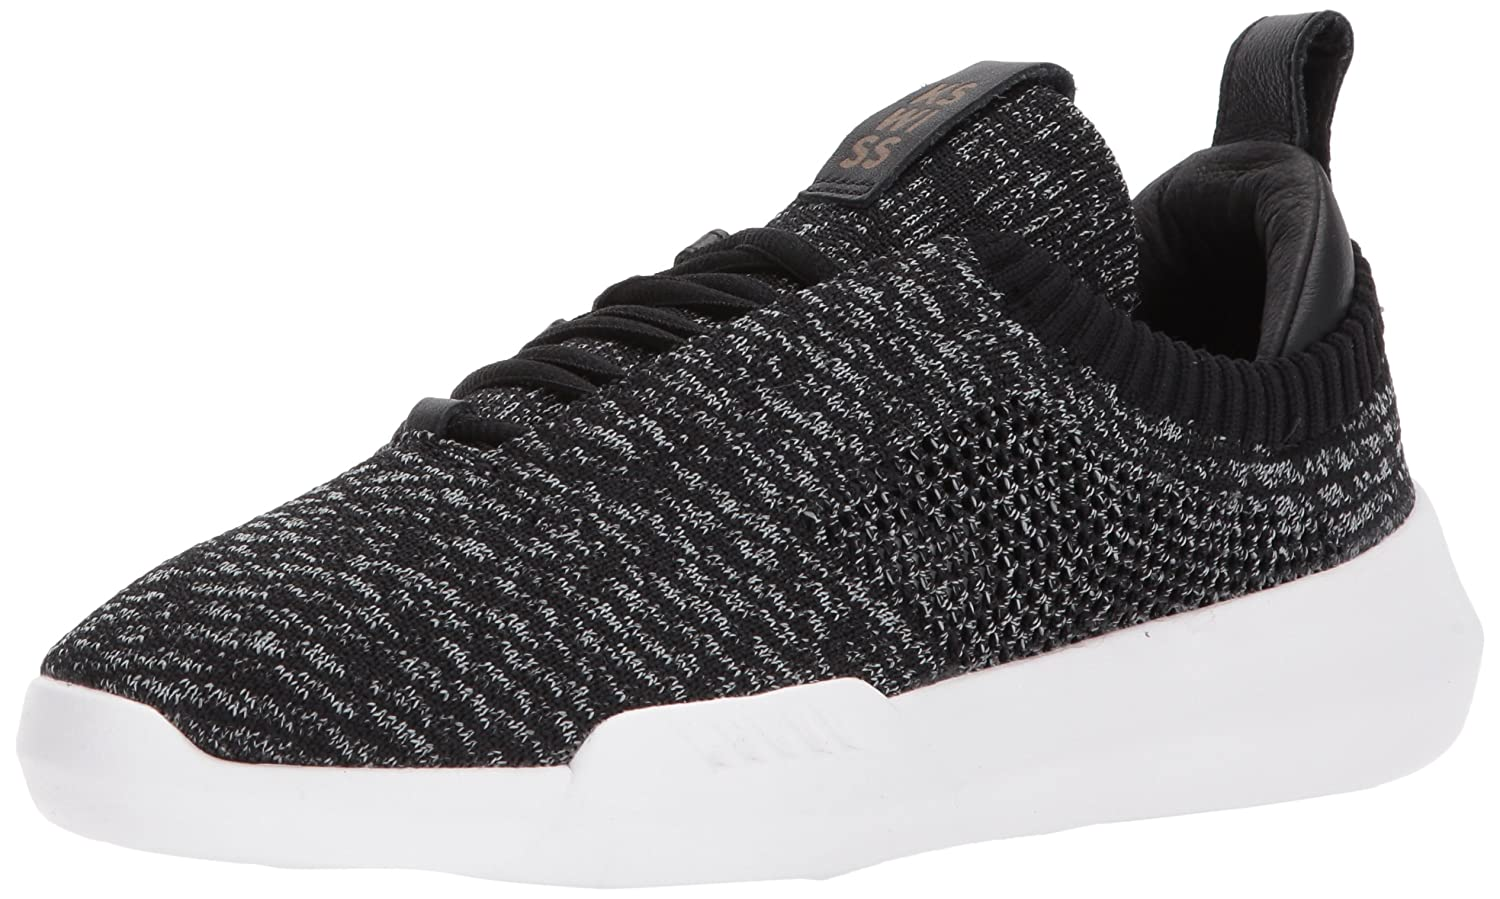 K-Swiss Women's Gen-k Icon Knit Sneaker B071HXY25M 10 B(M) US|Black/Gray Heather